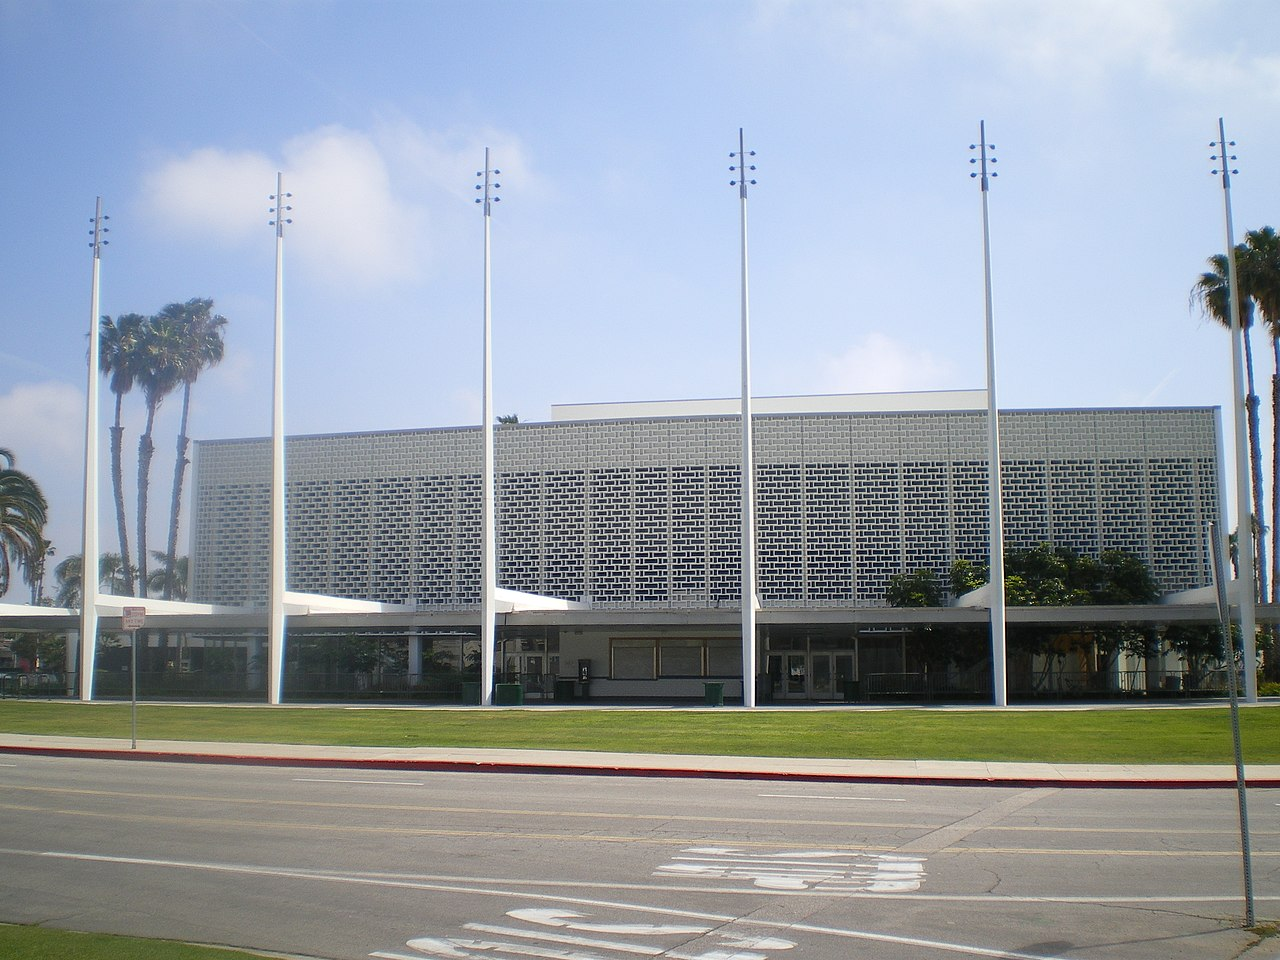 1280px-Santa_Monica_Civic_Auditorium.JPG